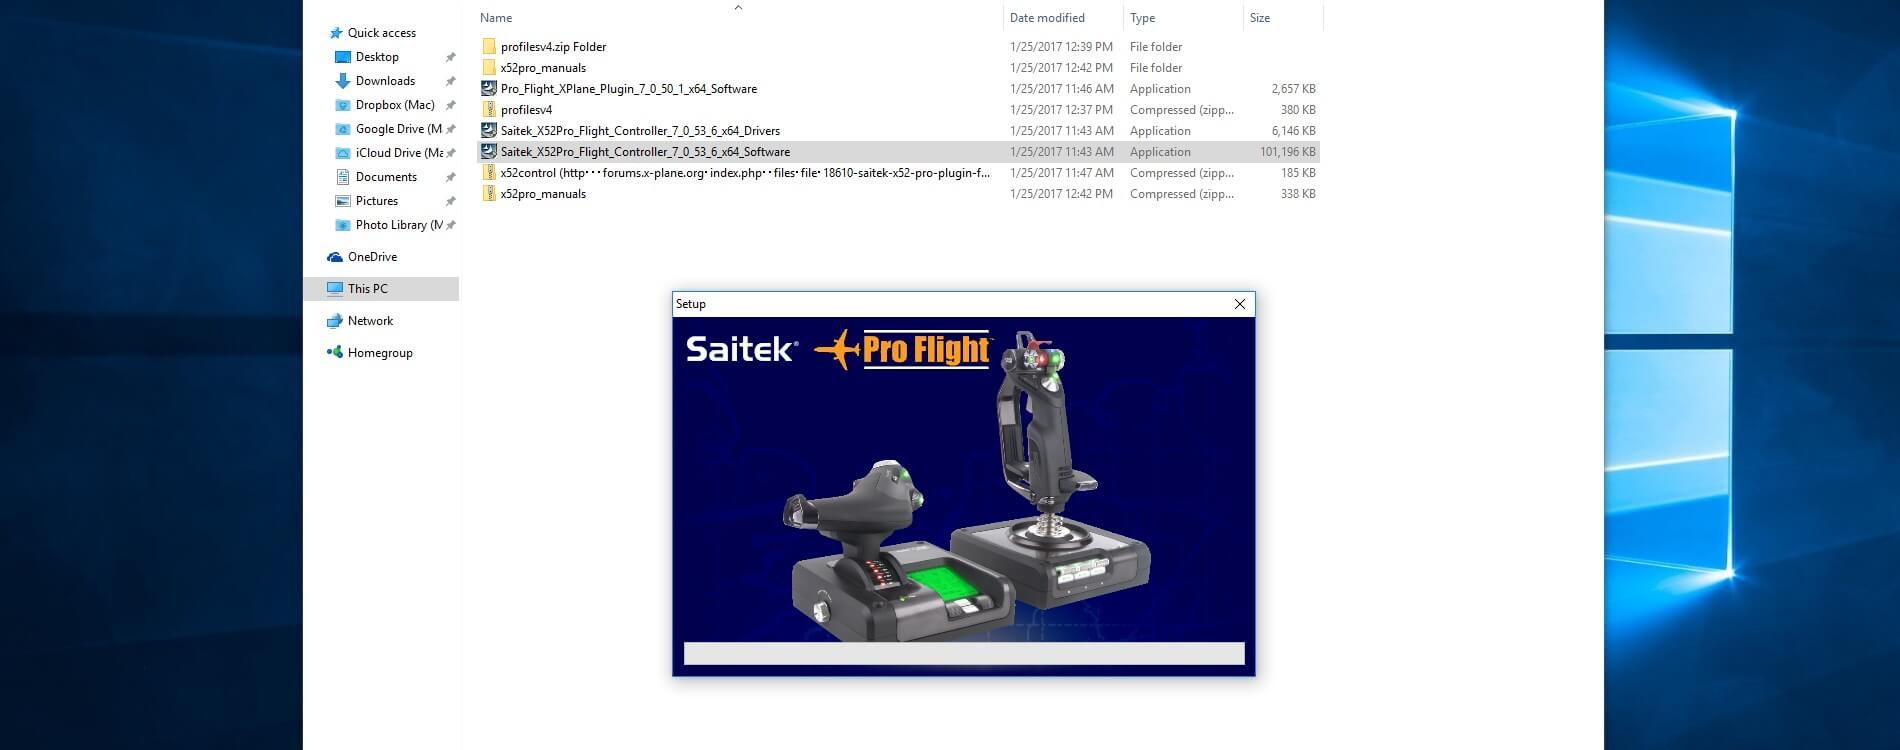 saitek drivers page not working